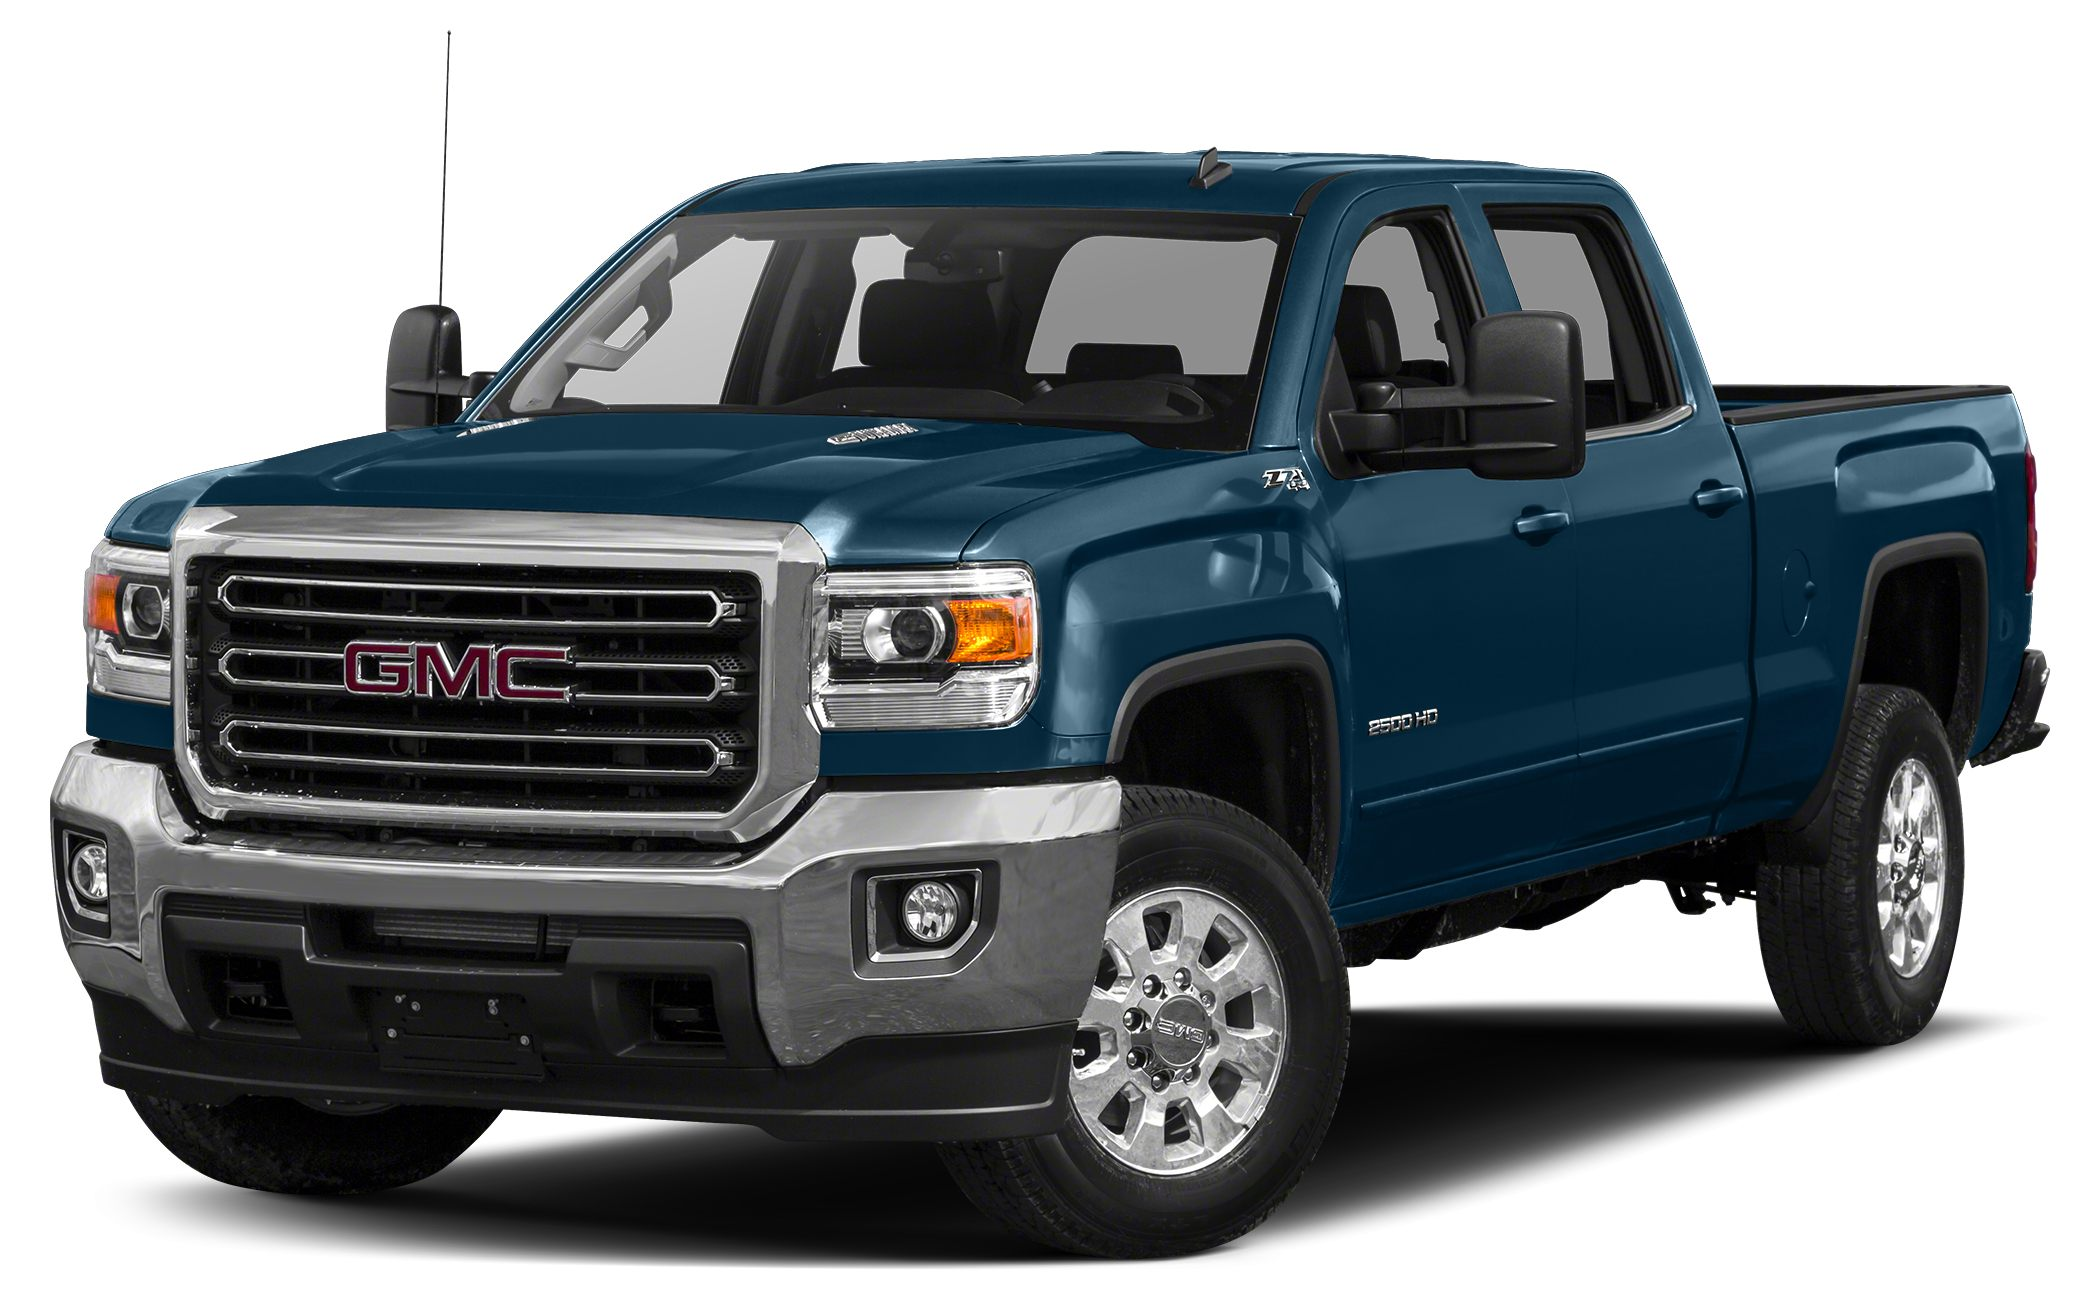 2018 GMC Sierra 2500HD SLE For a smoother ride opt for this 2018 GMC Sierra 2500HD SLE with a bac